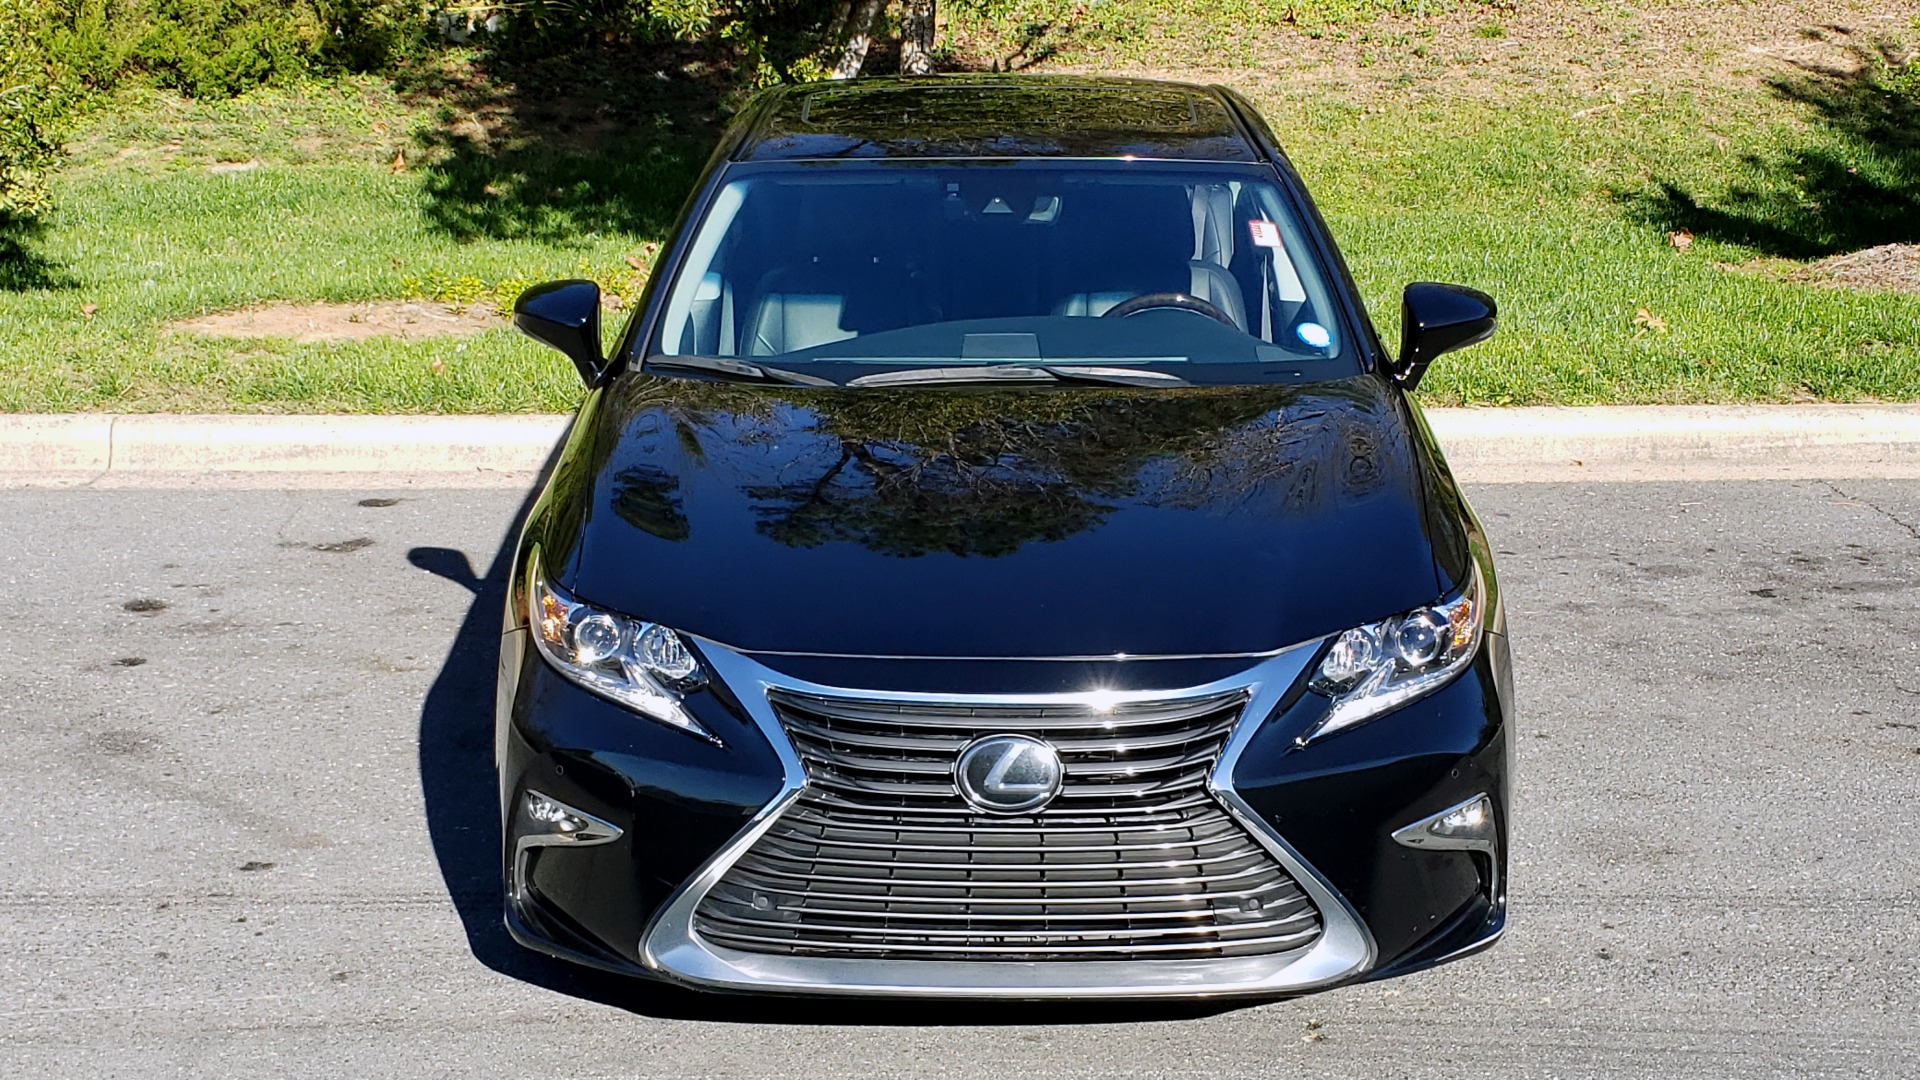 Used 2017 Lexus ES 350 PREMIUM / NAV / SUNROOF / BSM / VENT STS / REARVIEW for sale $24,795 at Formula Imports in Charlotte NC 28227 17